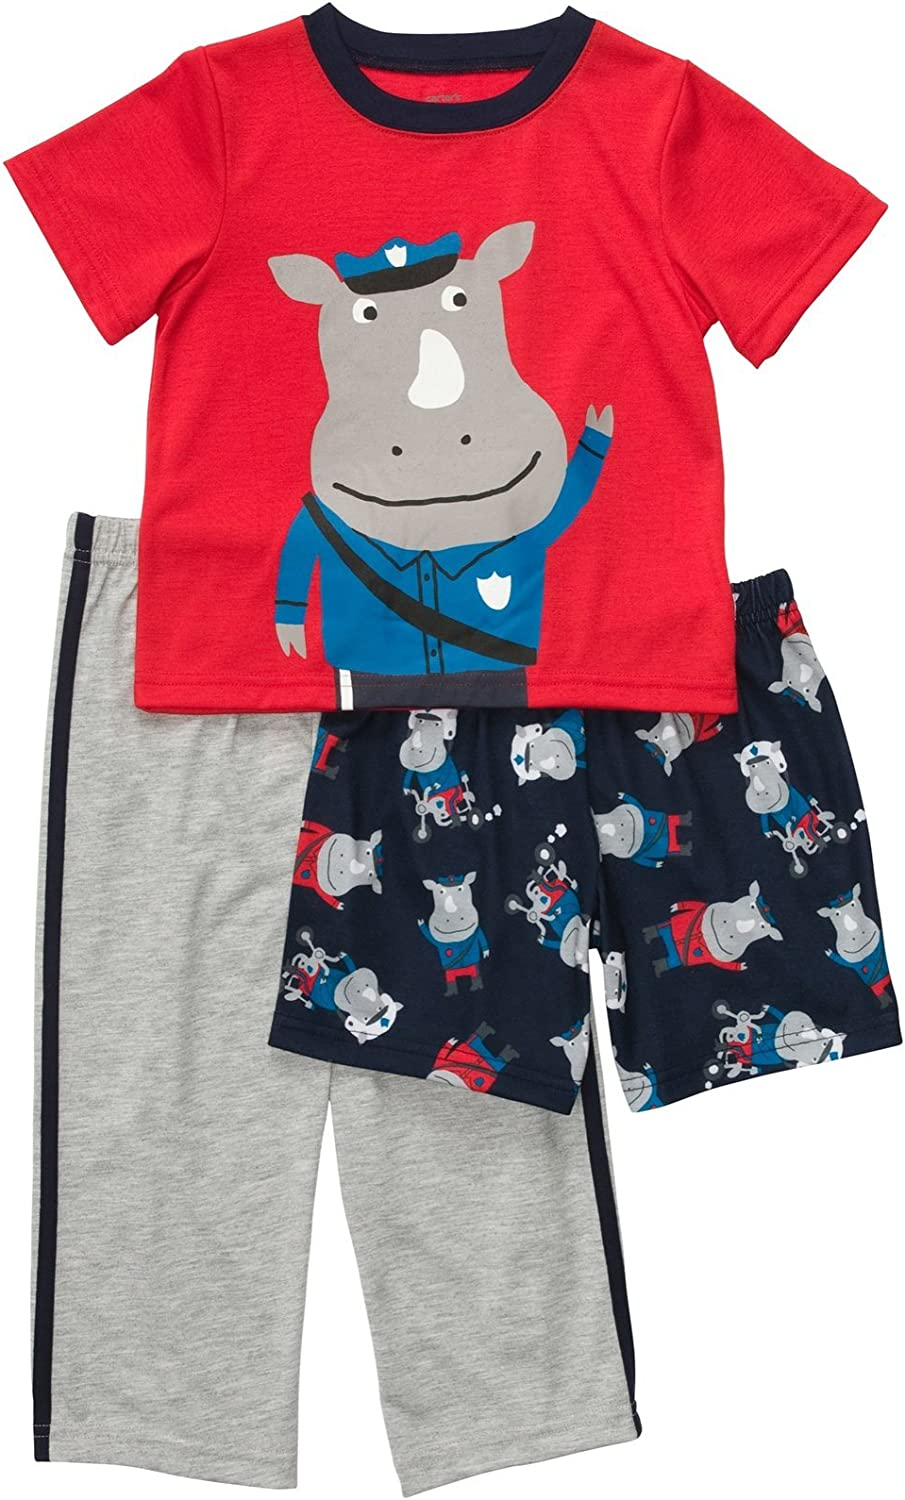 Rhino Police-24 Months Carters 3-Piece Poly